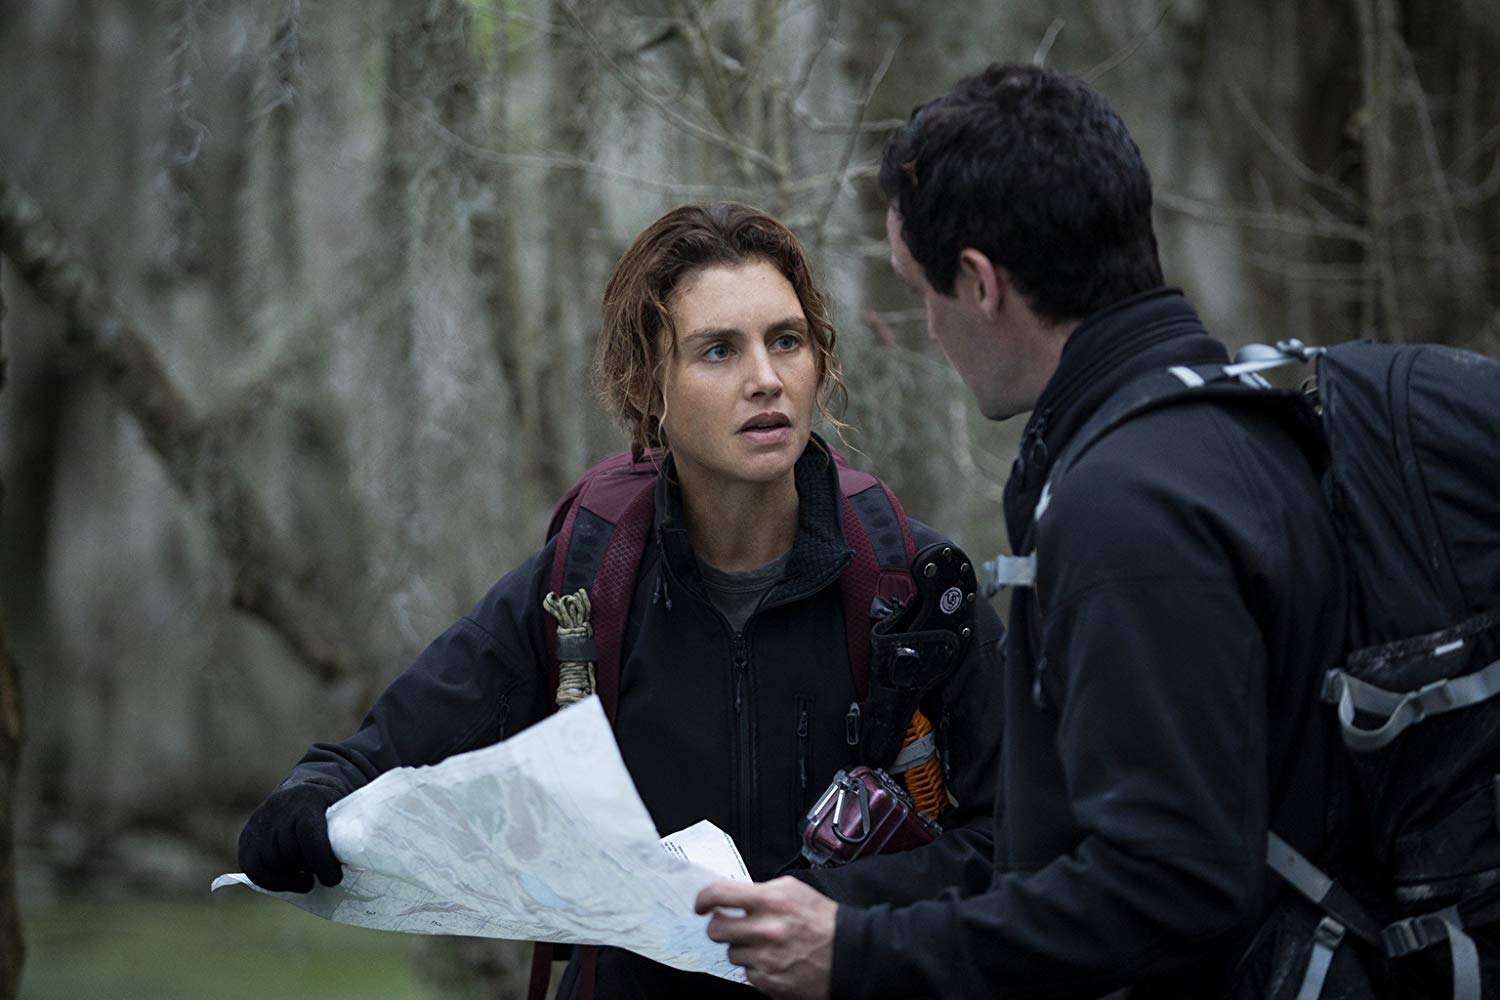 The First: James Ransone, Hannah Ware in una scena dell'episodio Cycles